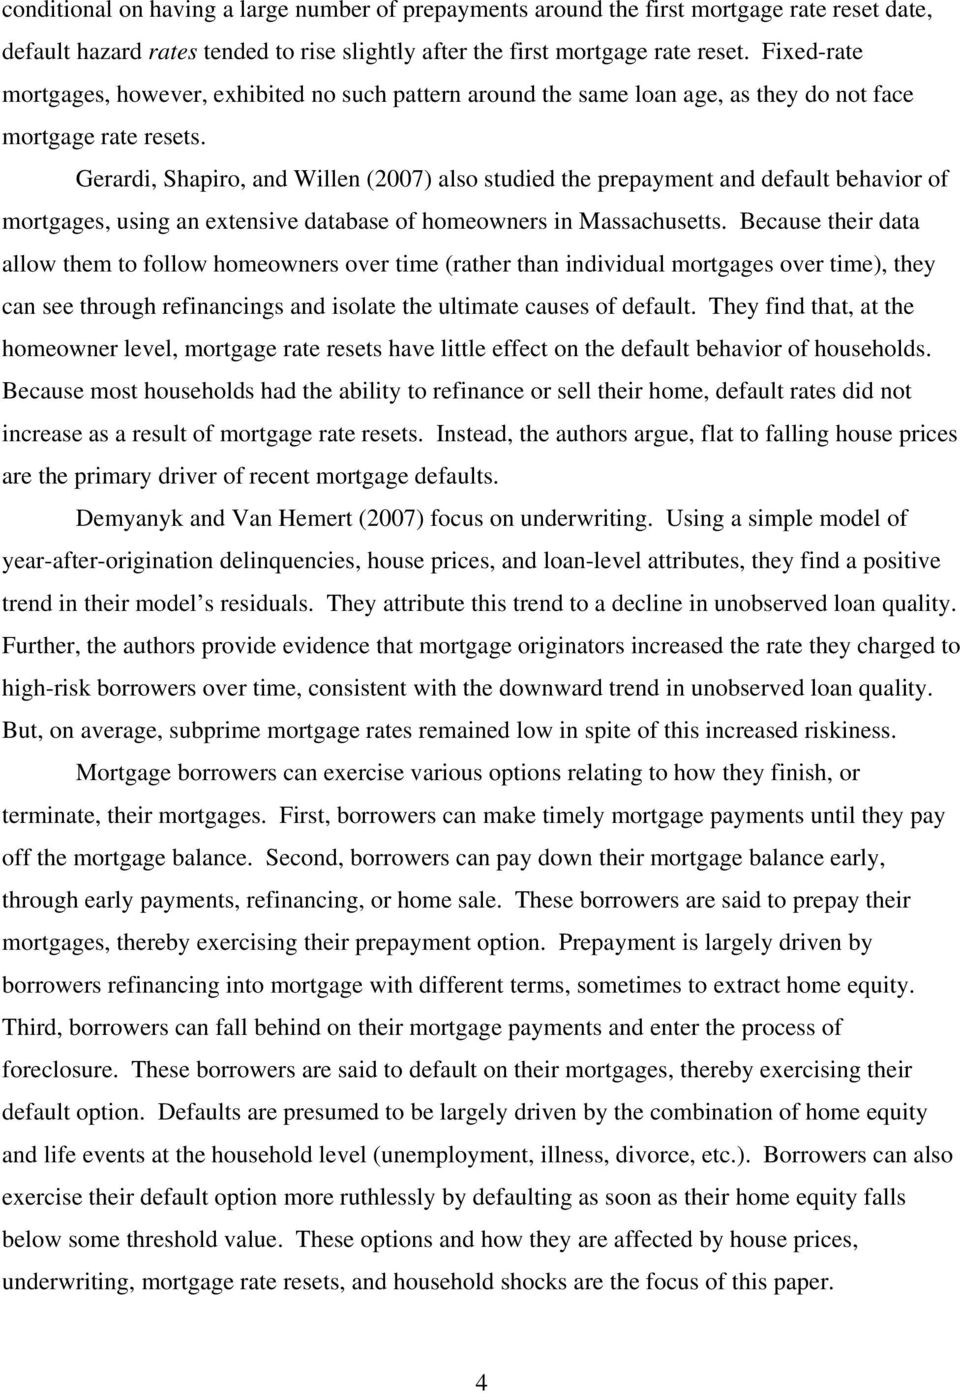 Gerardi, Shapiro, and Willen (2007) also studied the prepayment and default behavior of mortgages, using an extensive database of homeowners in Massachusetts.